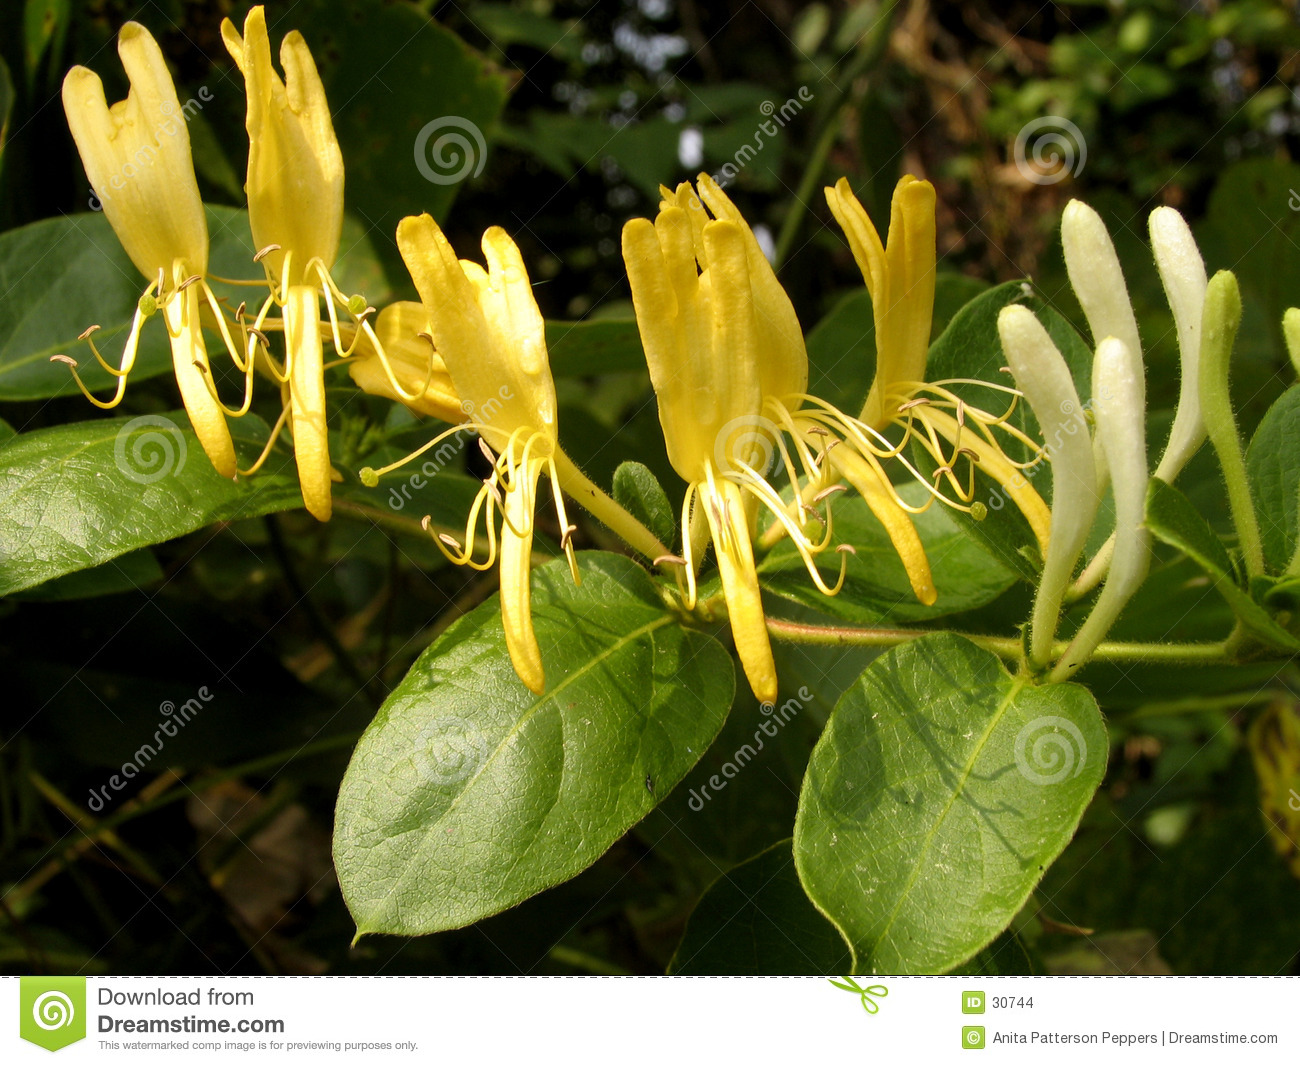 Close up of yellow honeysuckle flowers on a vine.